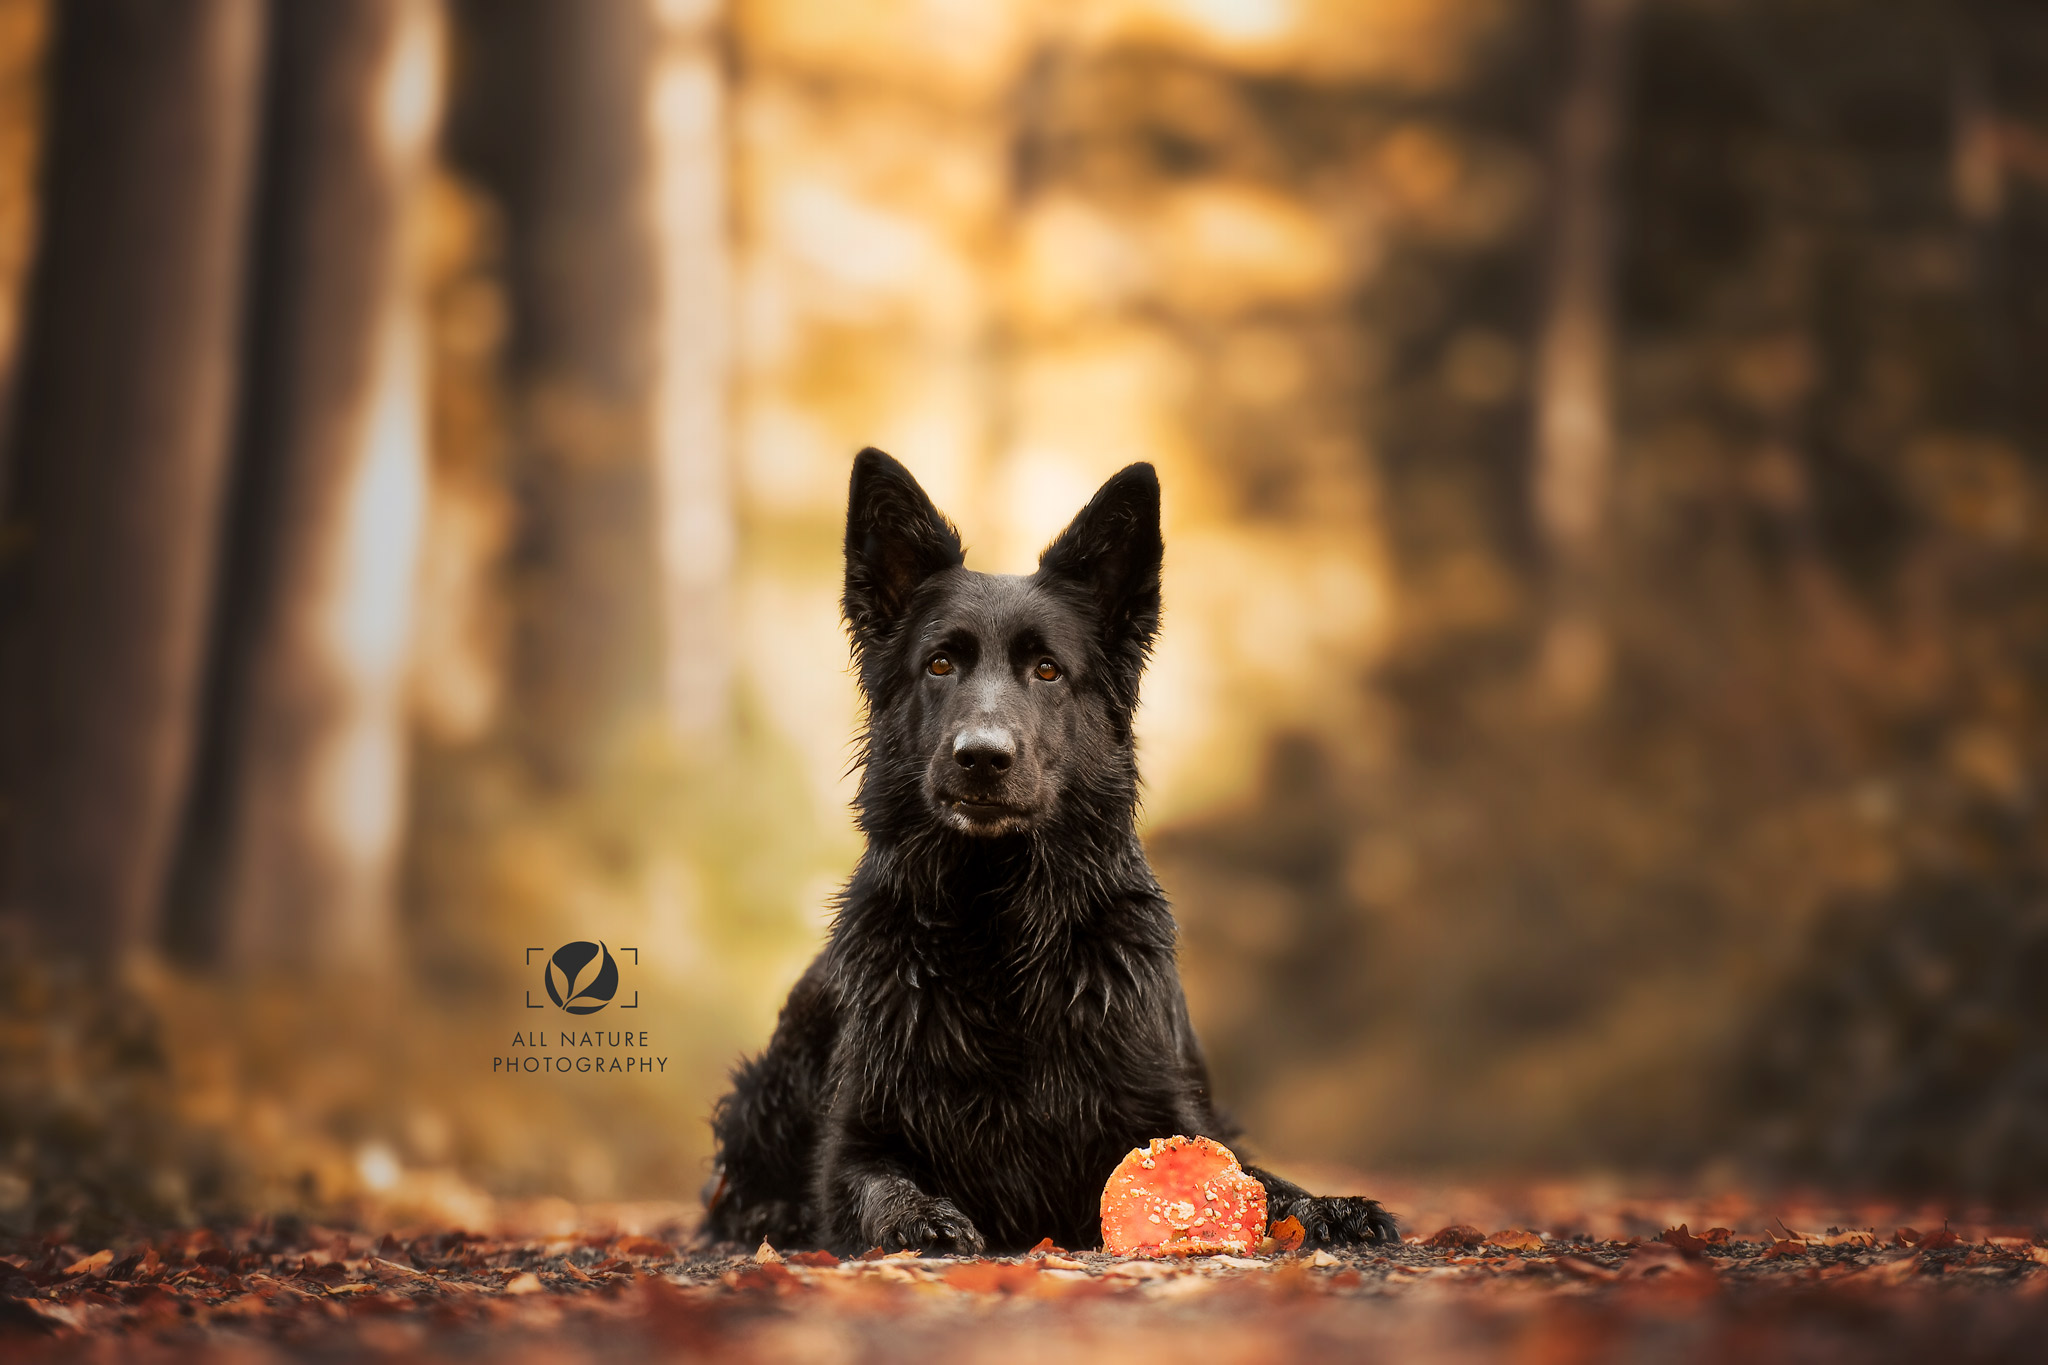 Aruna van Havezathe-Saterslo My Best Friend fokker Oudduitse Herder foto All Nature Photography